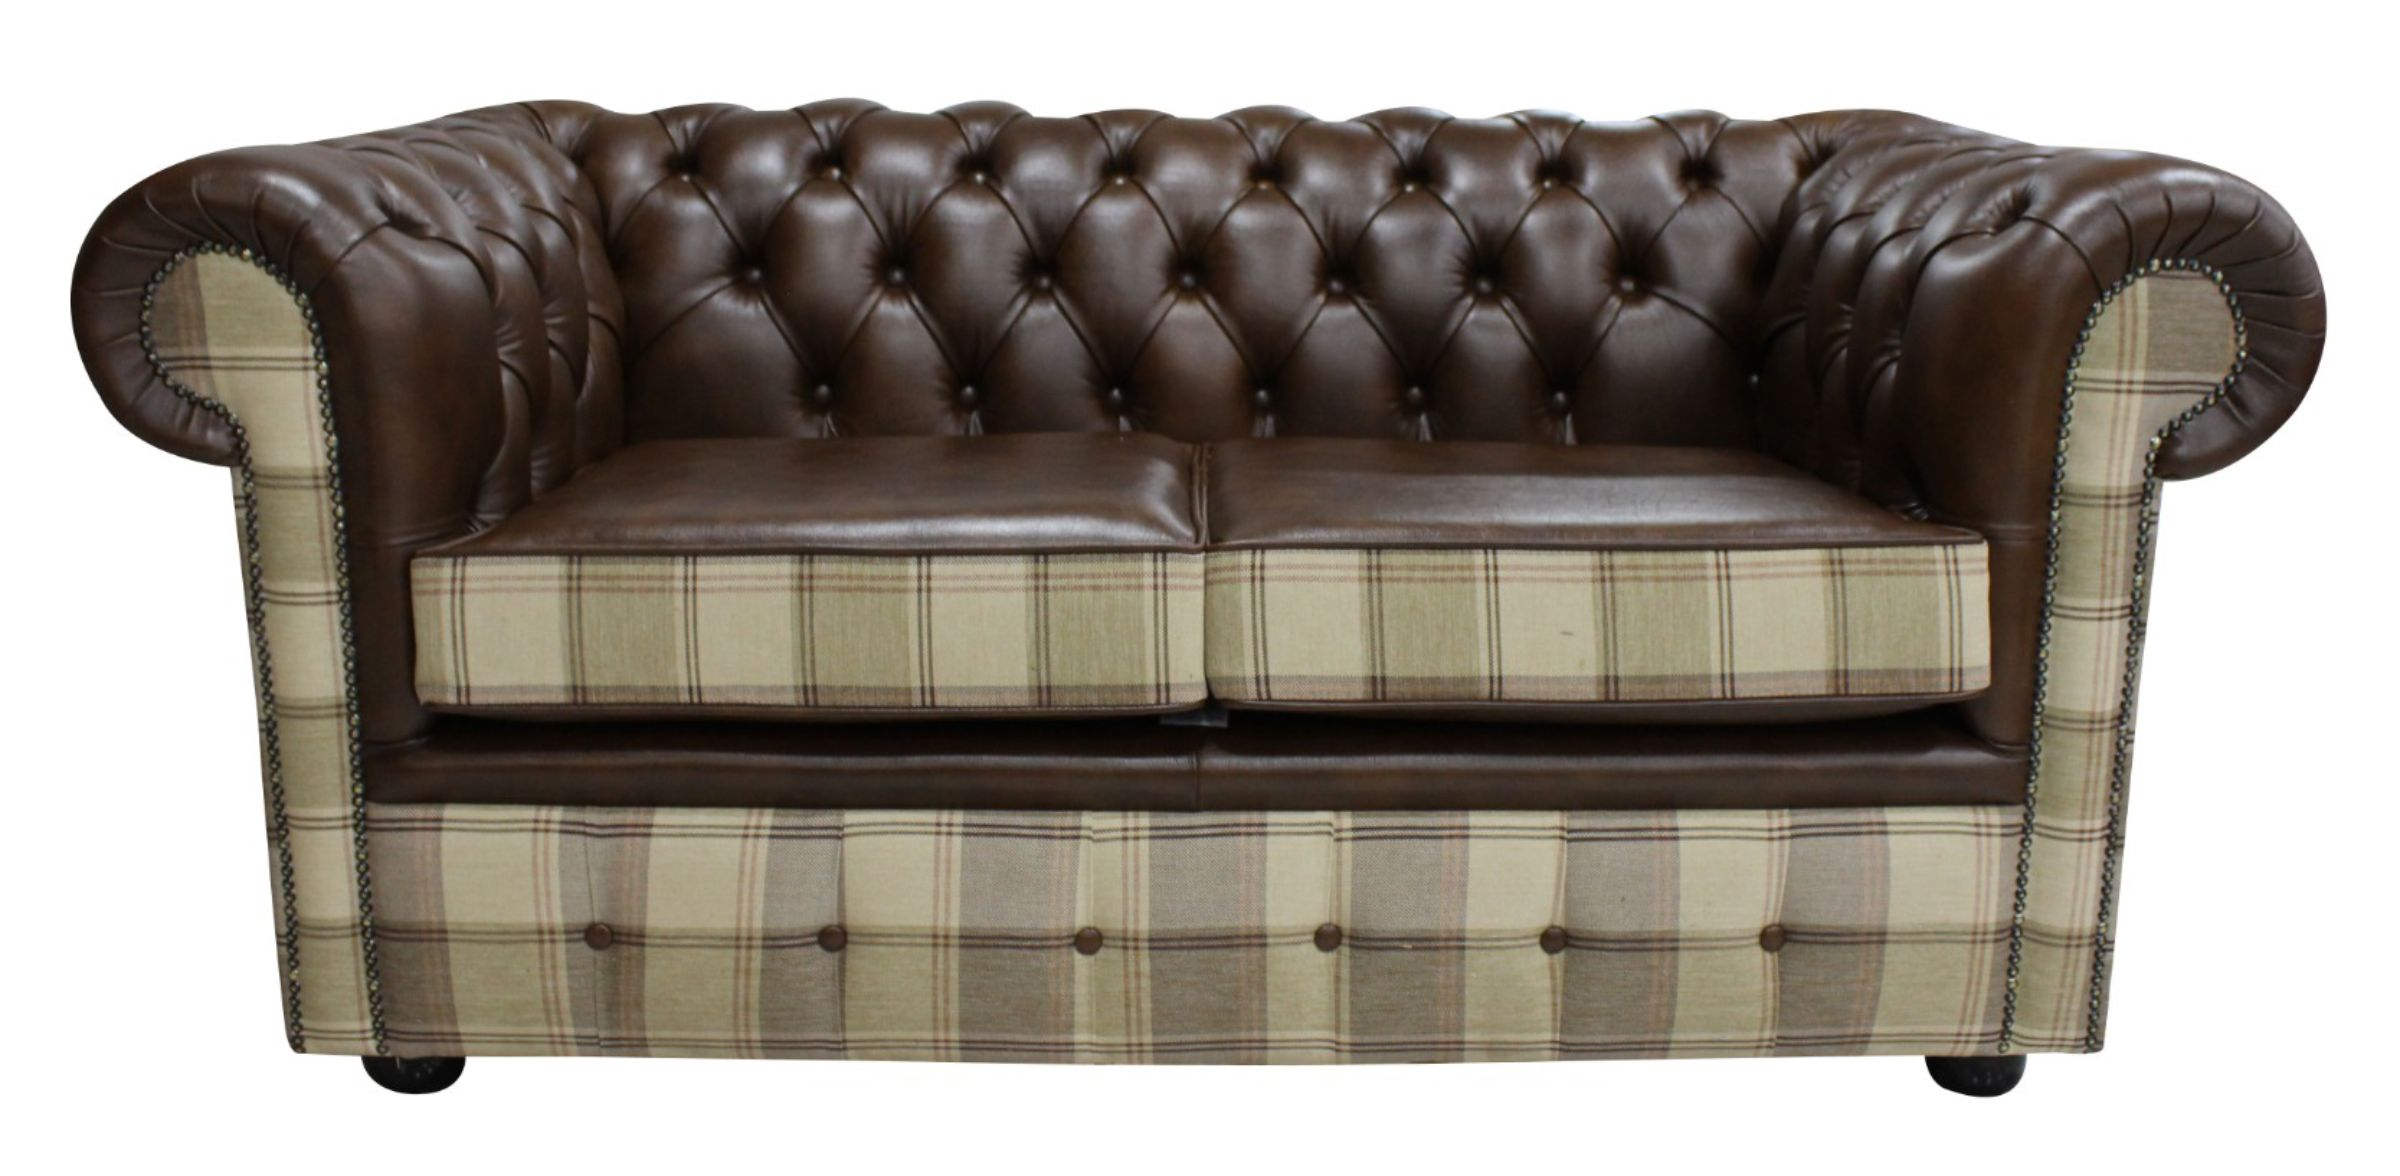 Buy Brown Leather Chesterfield Sofa Uk Designersofas4u